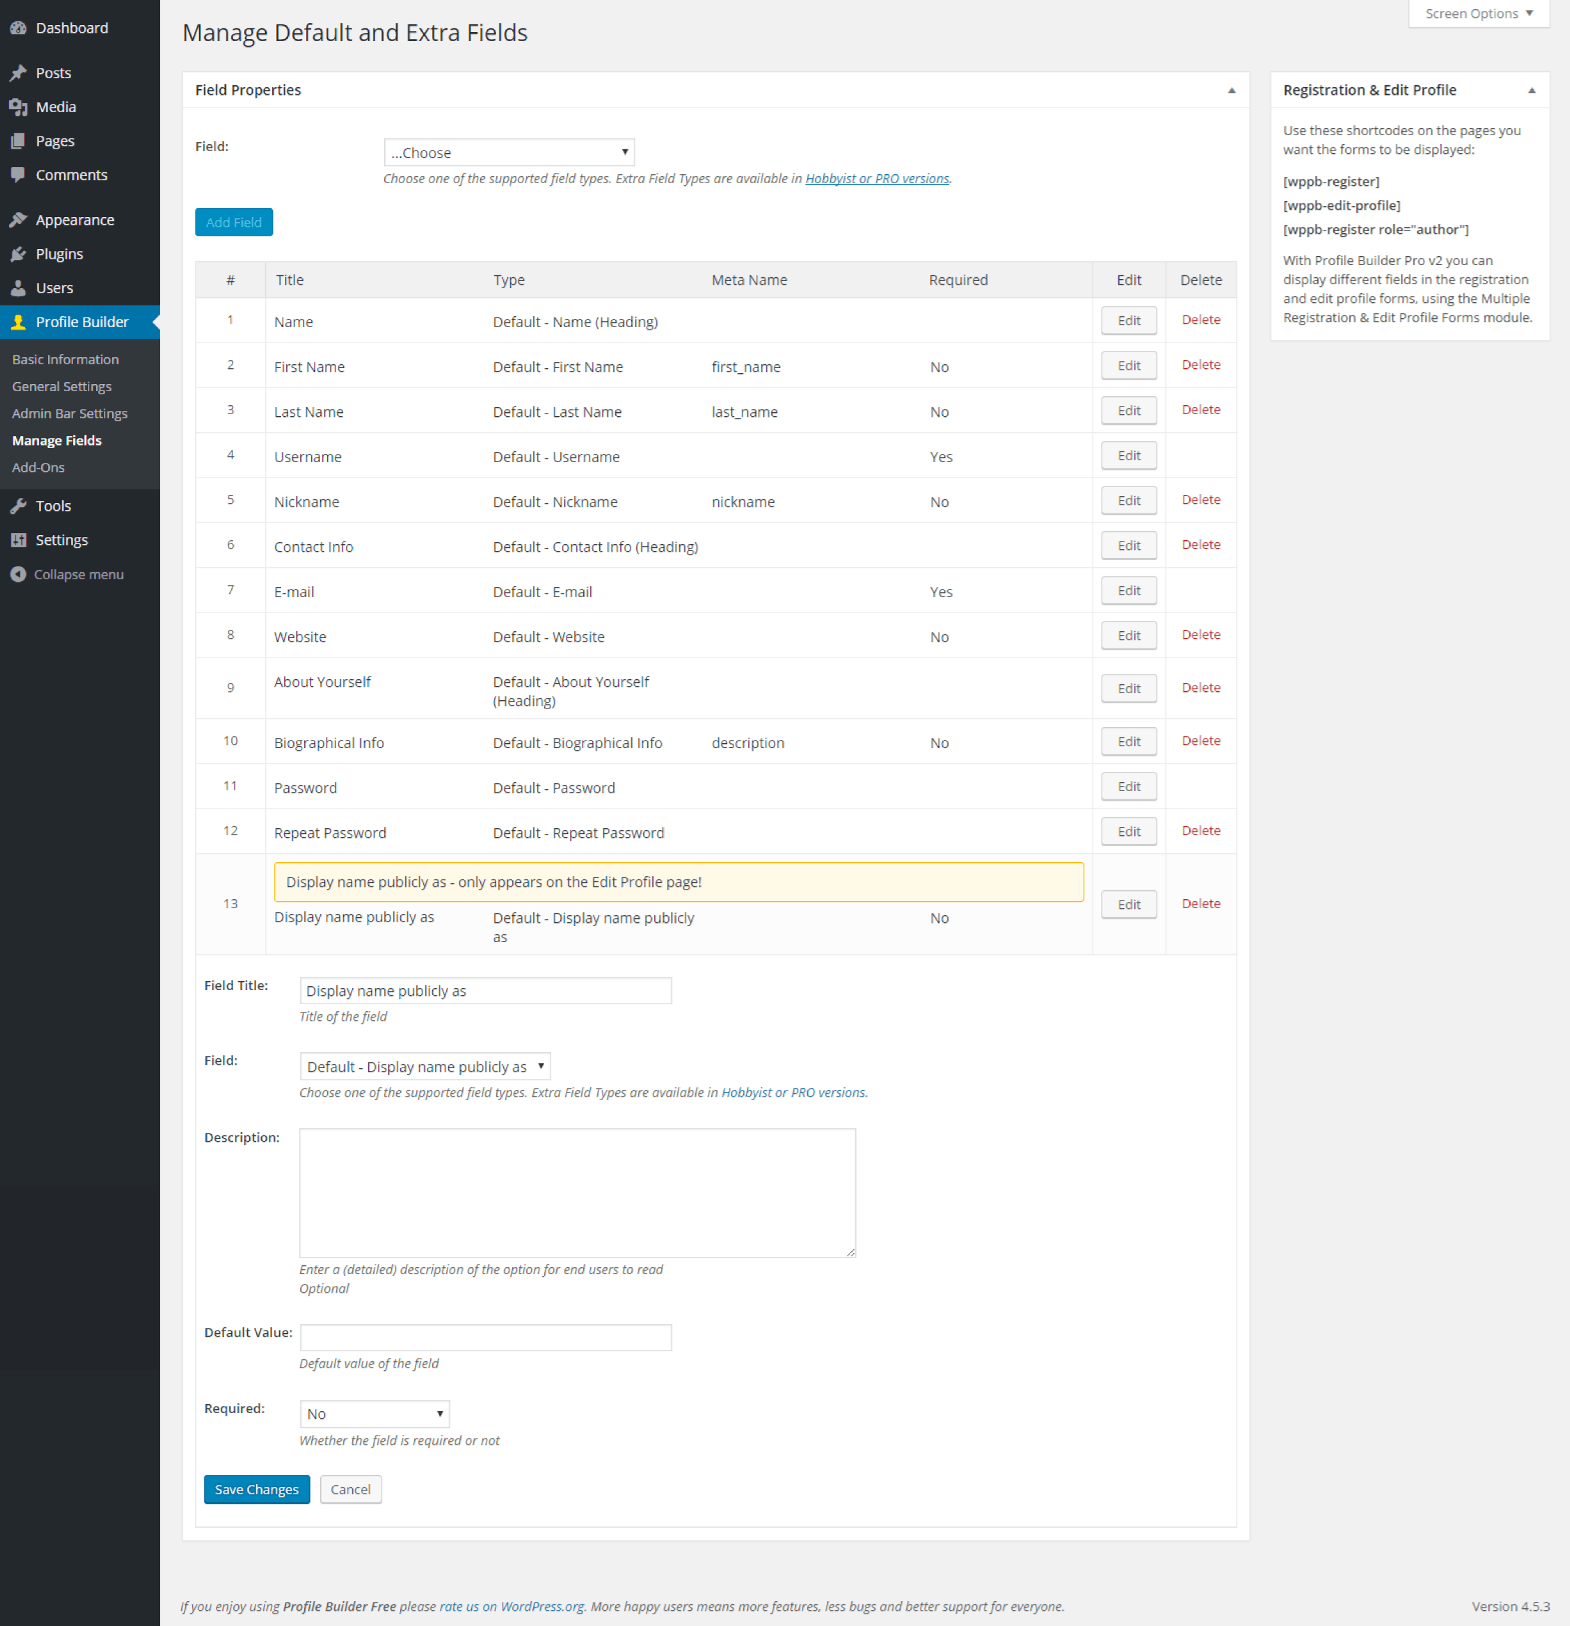 Profile Builder - Default Display name publicly as Field Back End